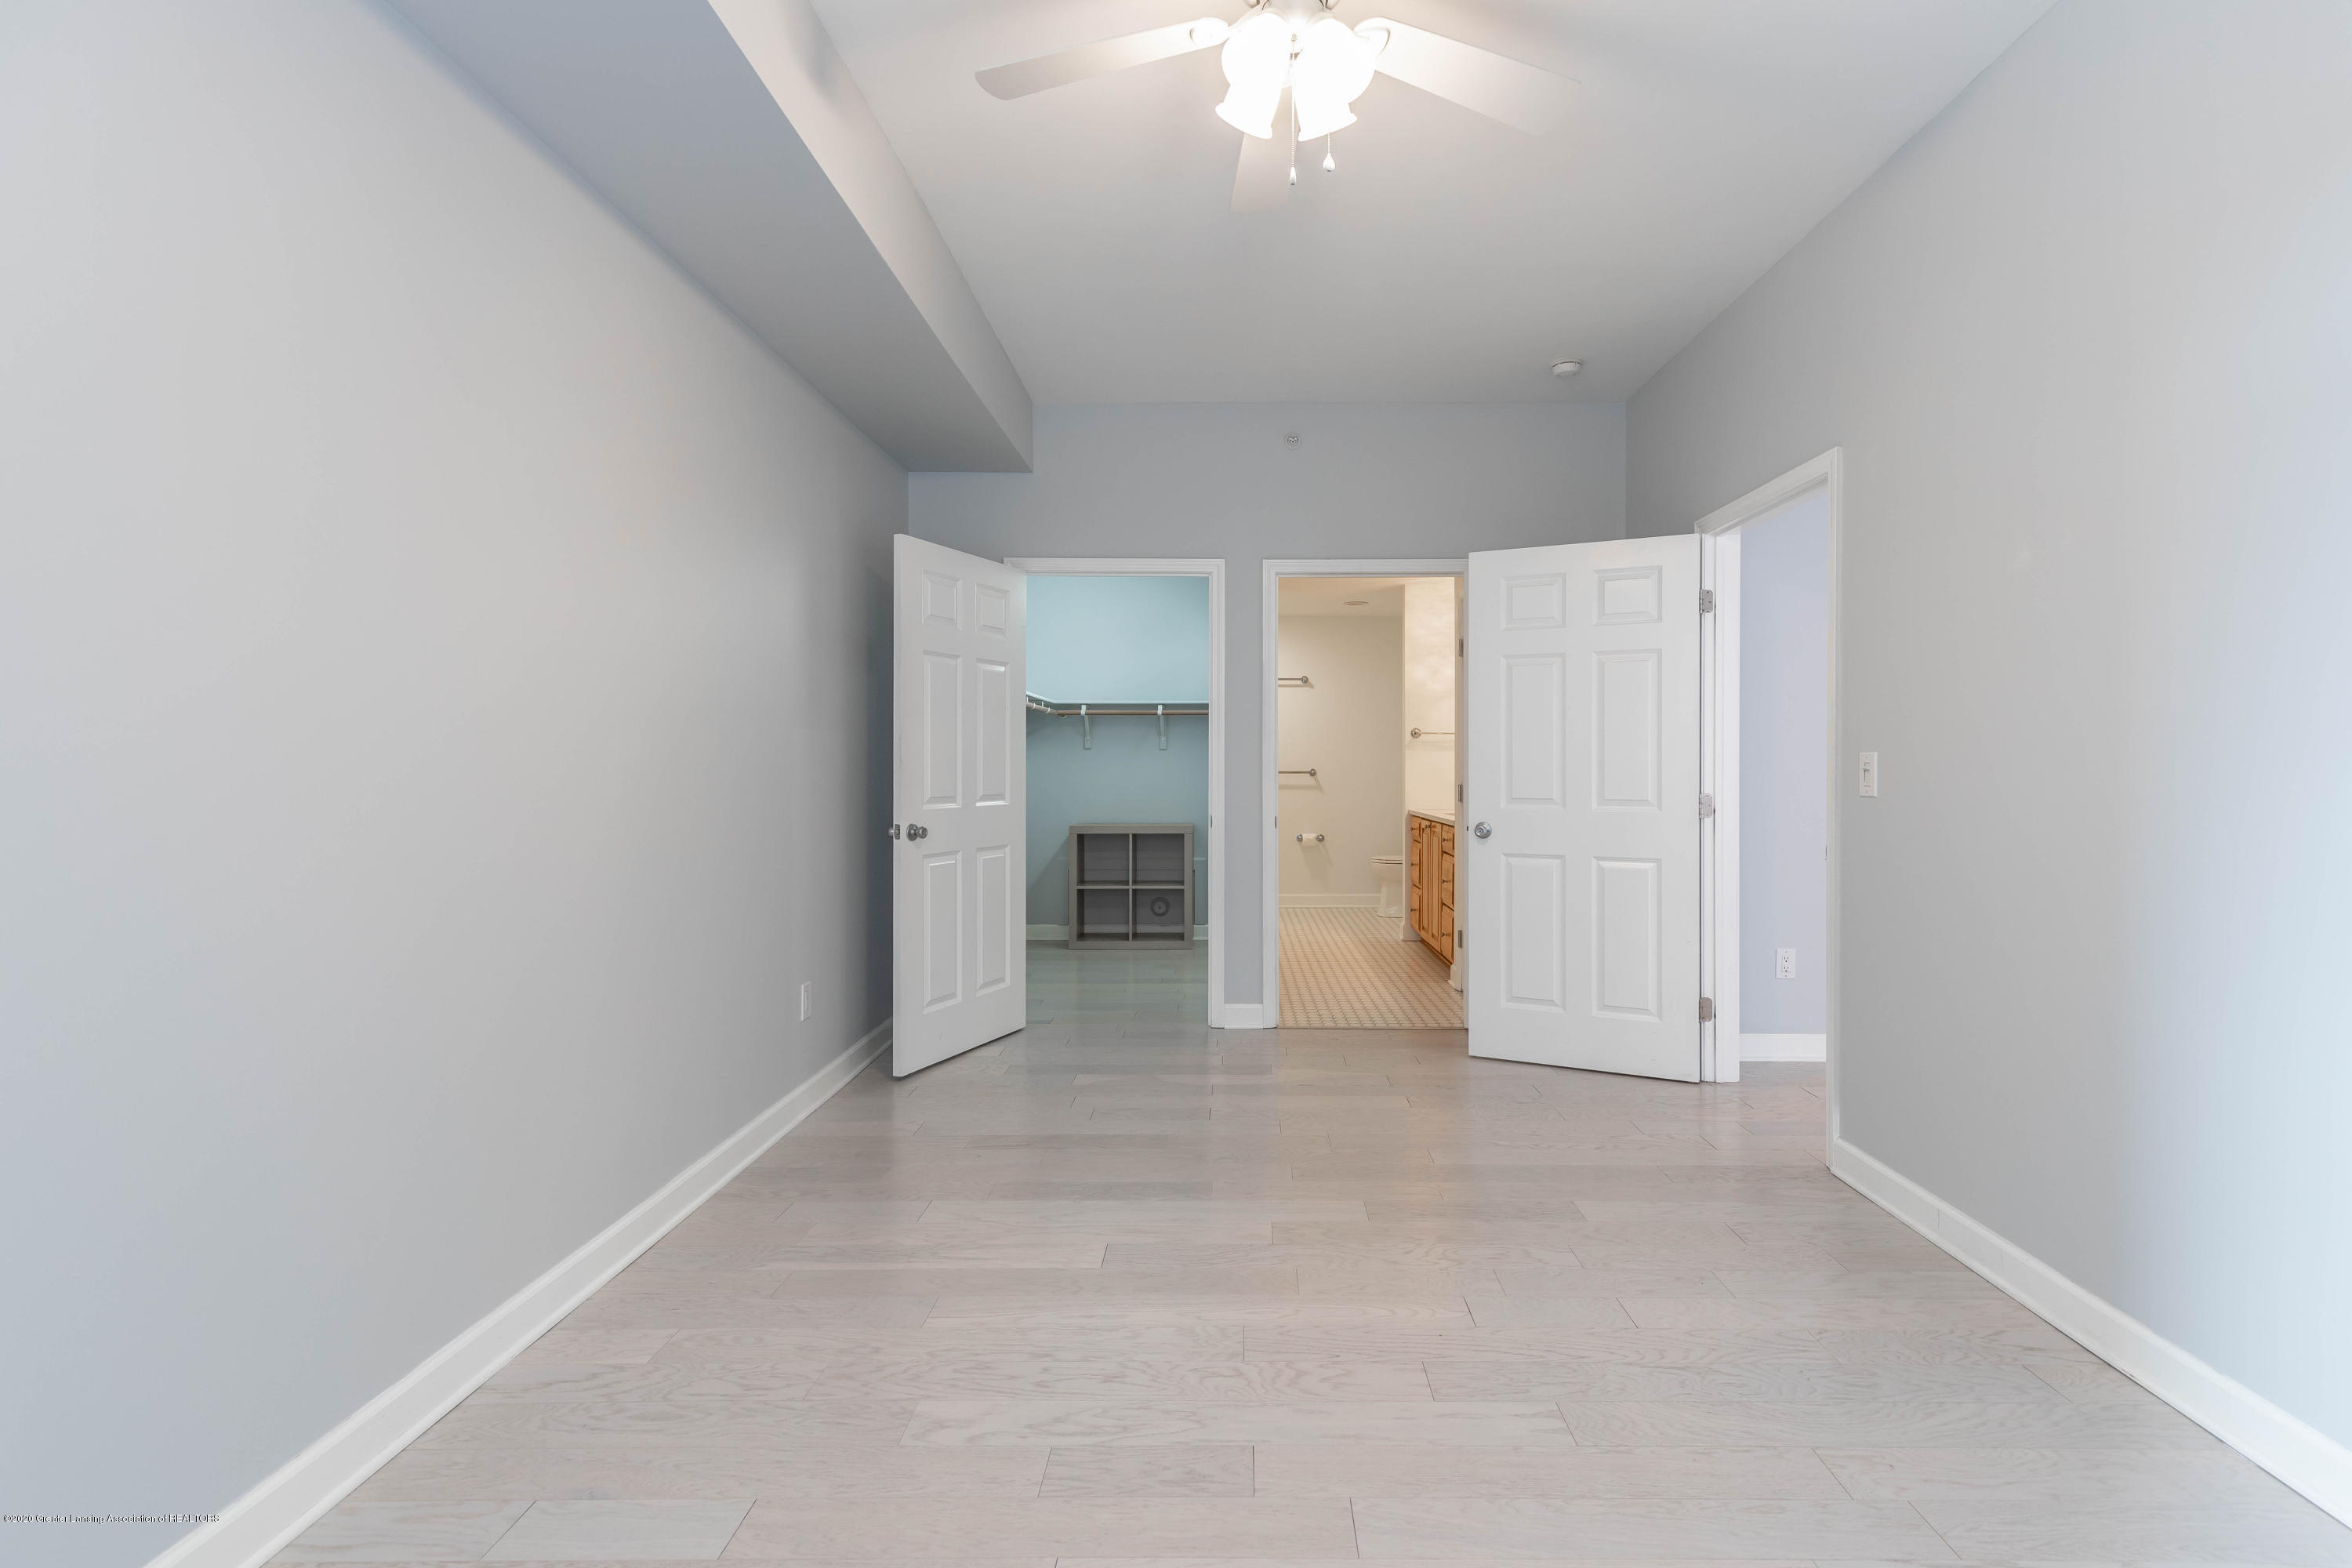 220 M. A. C. Ave Apt 313 - Master bedroom - 14